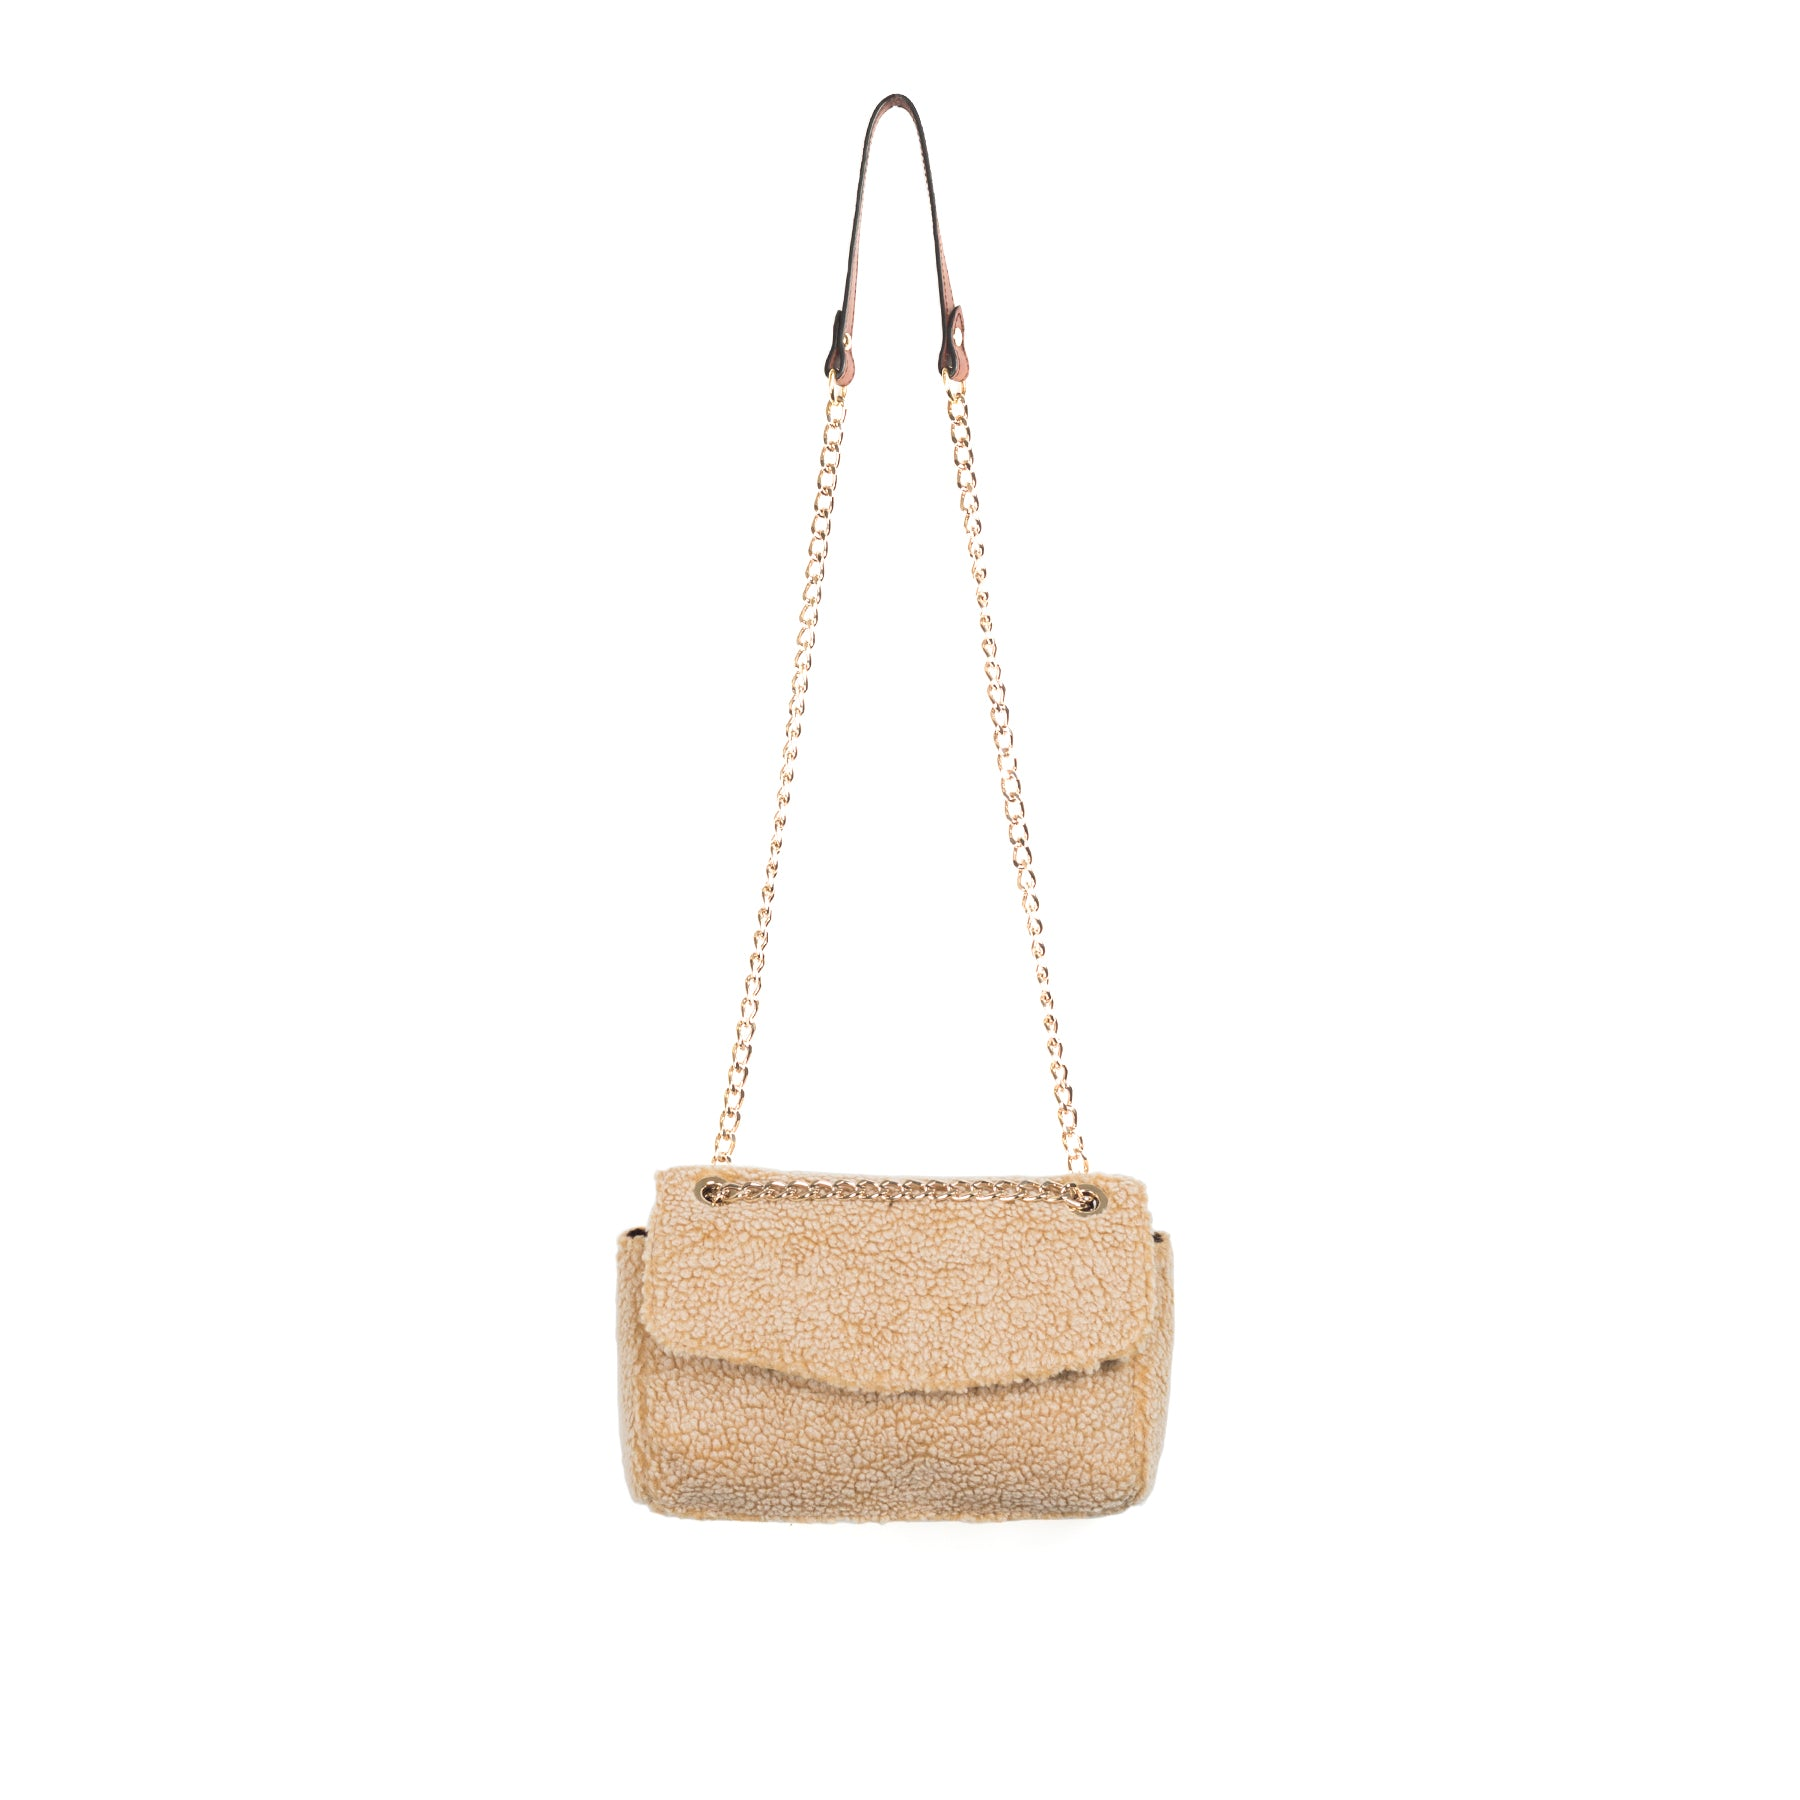 Brigitte Tan Teddy Shoulder Bags